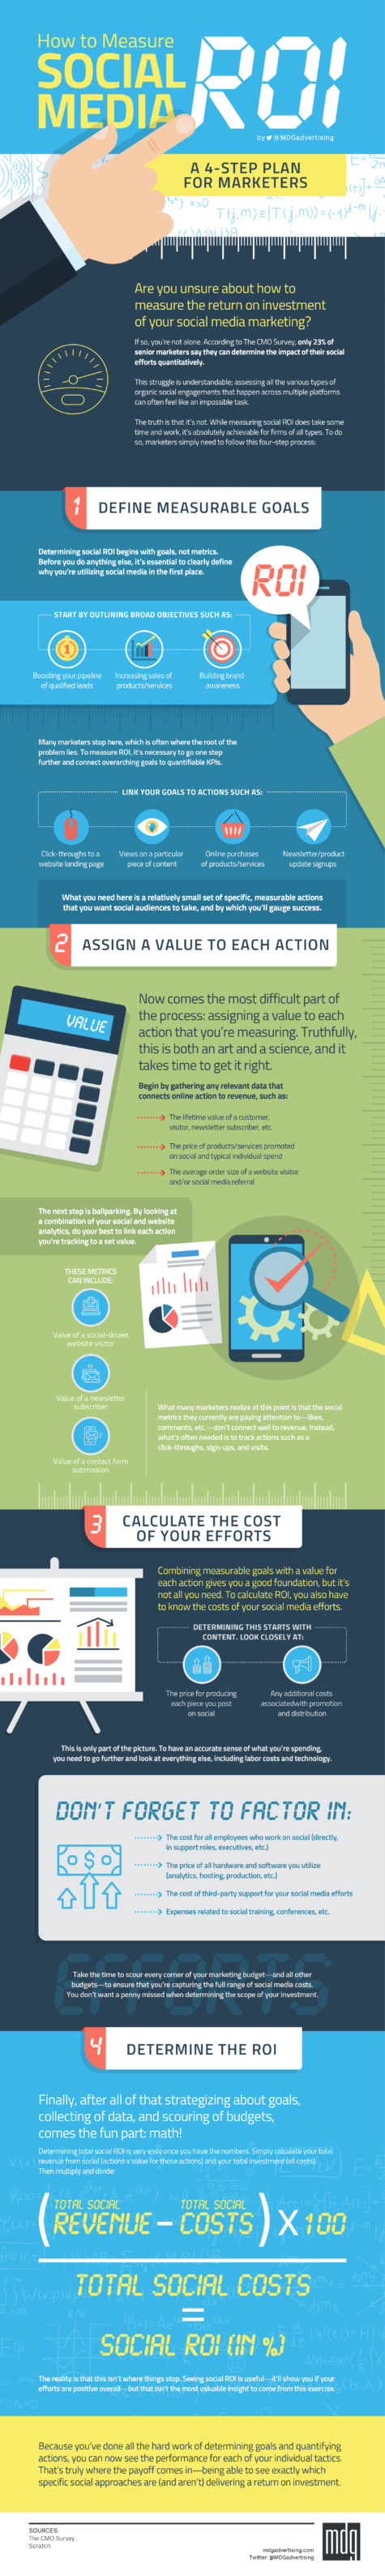 How to Measure Social Media ROI: A 4-Step Plan for Marketers [Infographic]